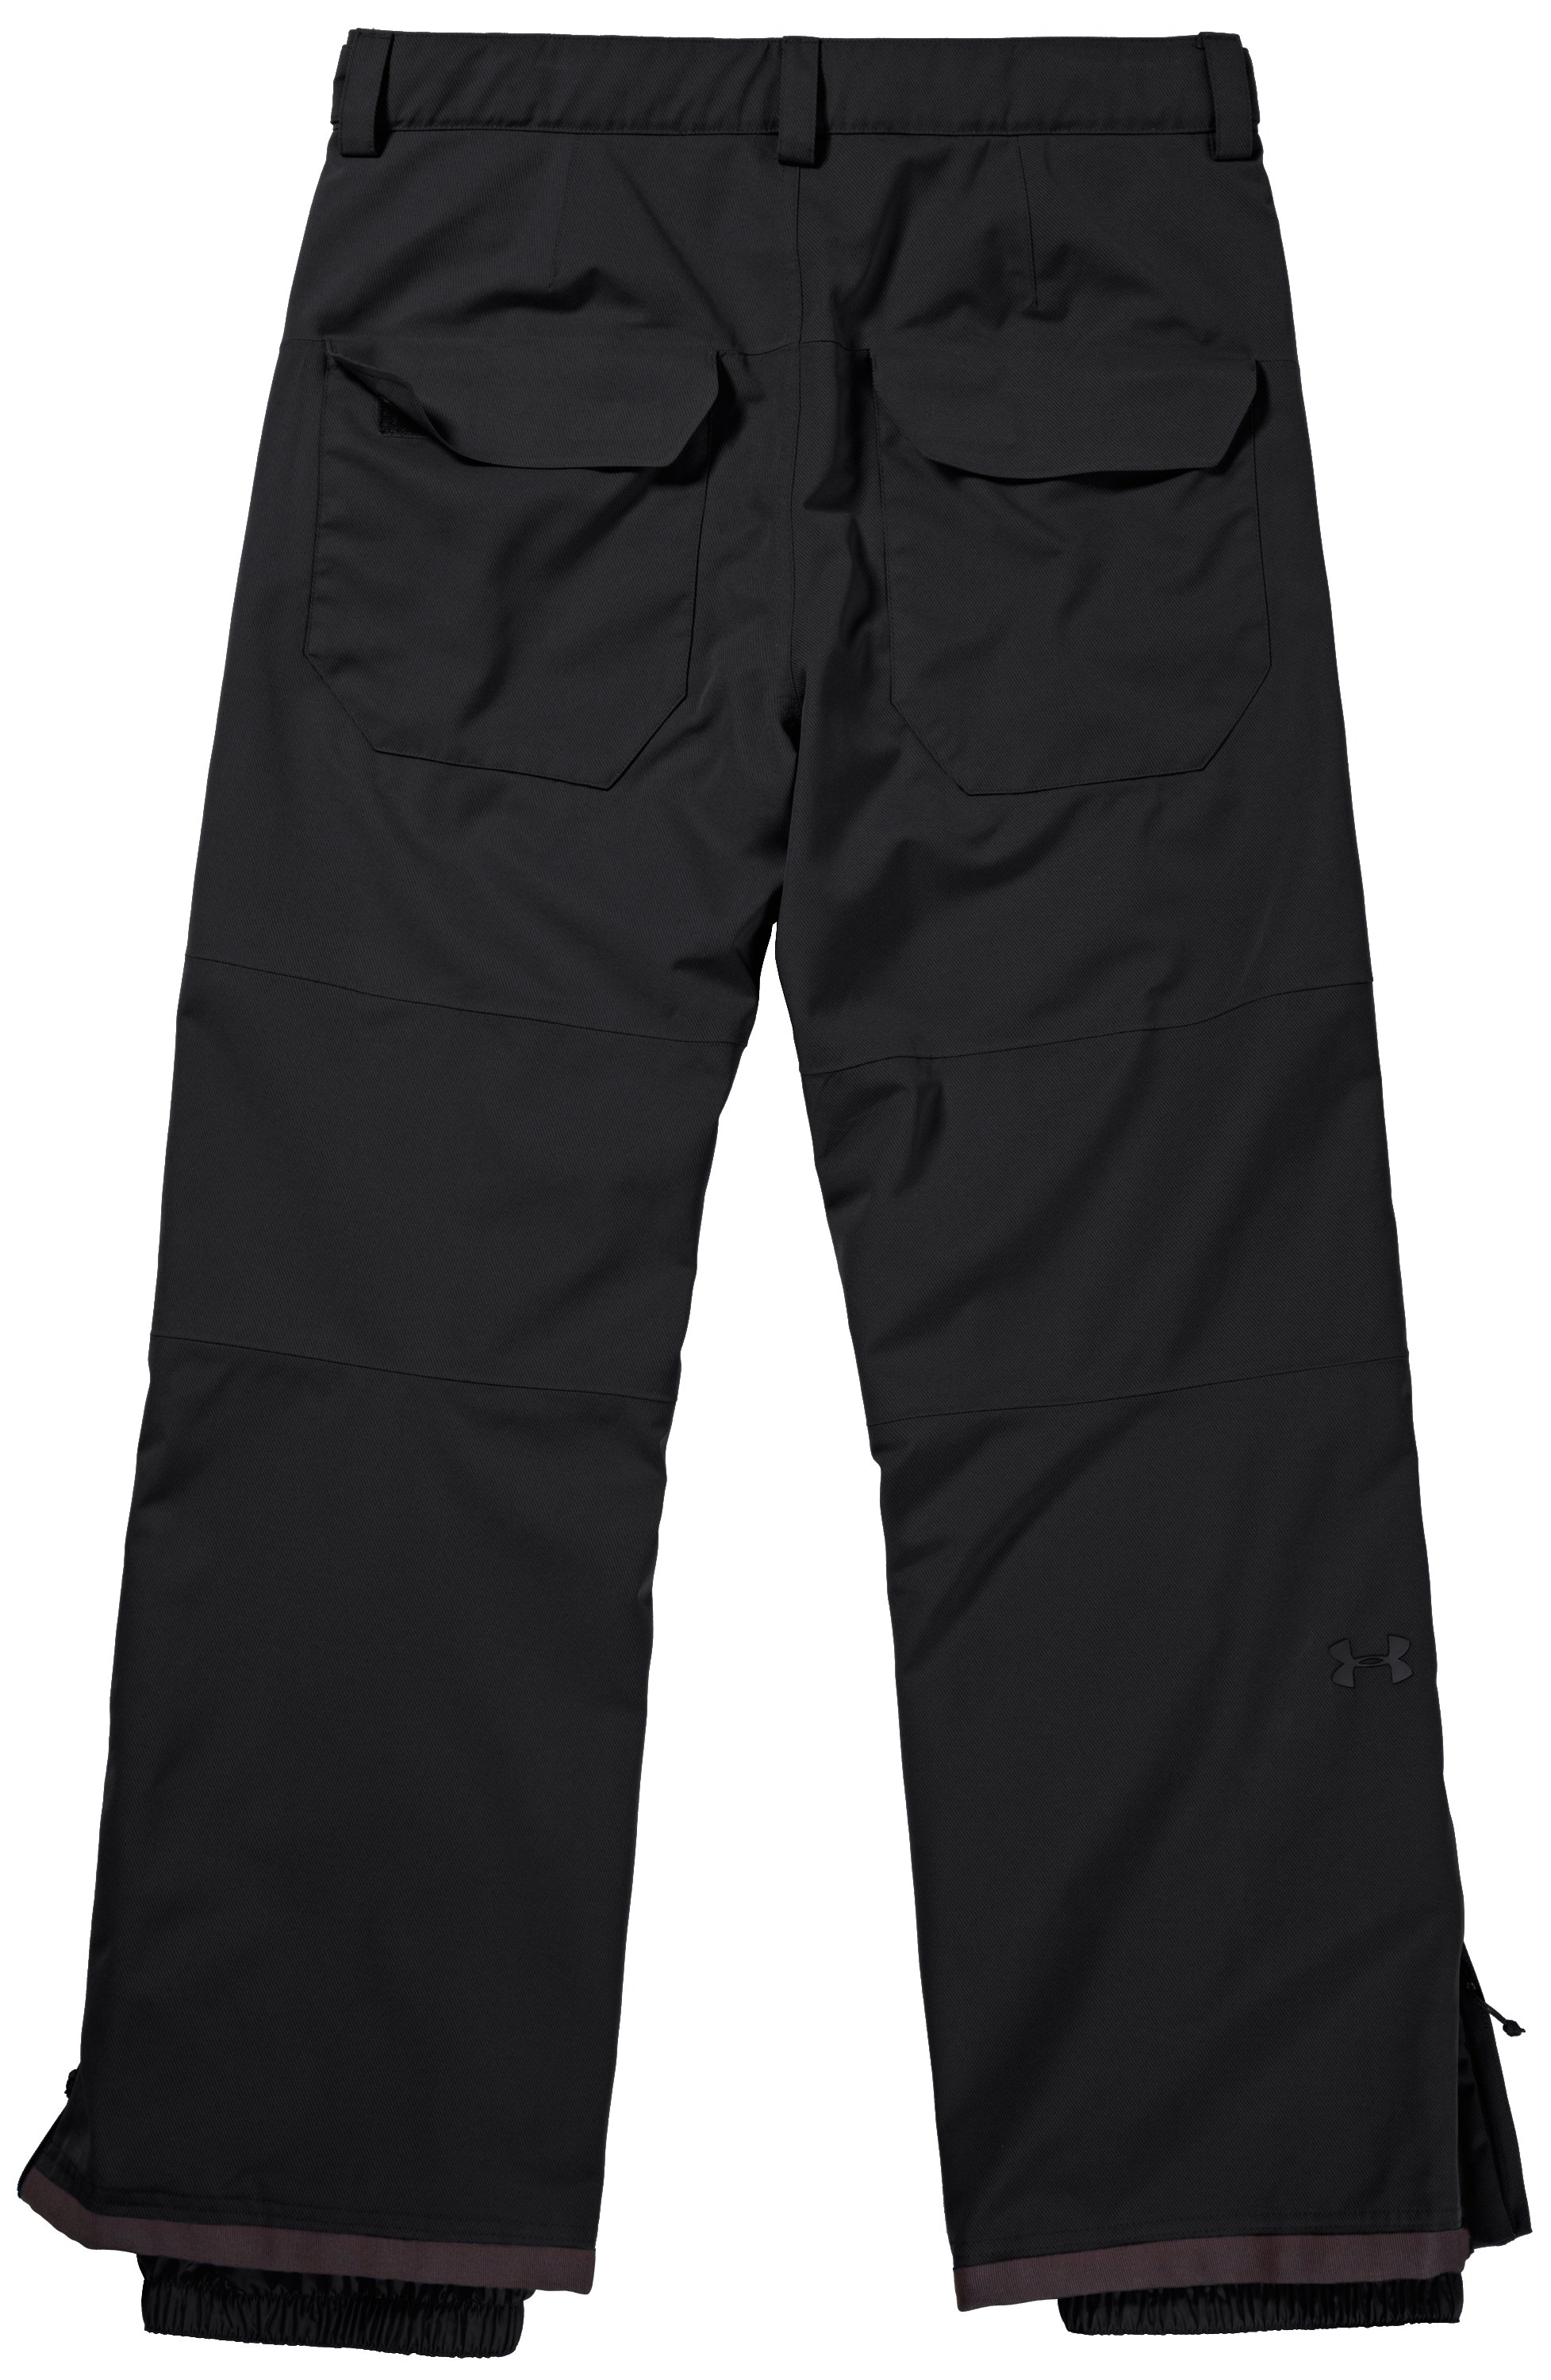 Men's ColdGear® Infrared Hatcher Pants, Black